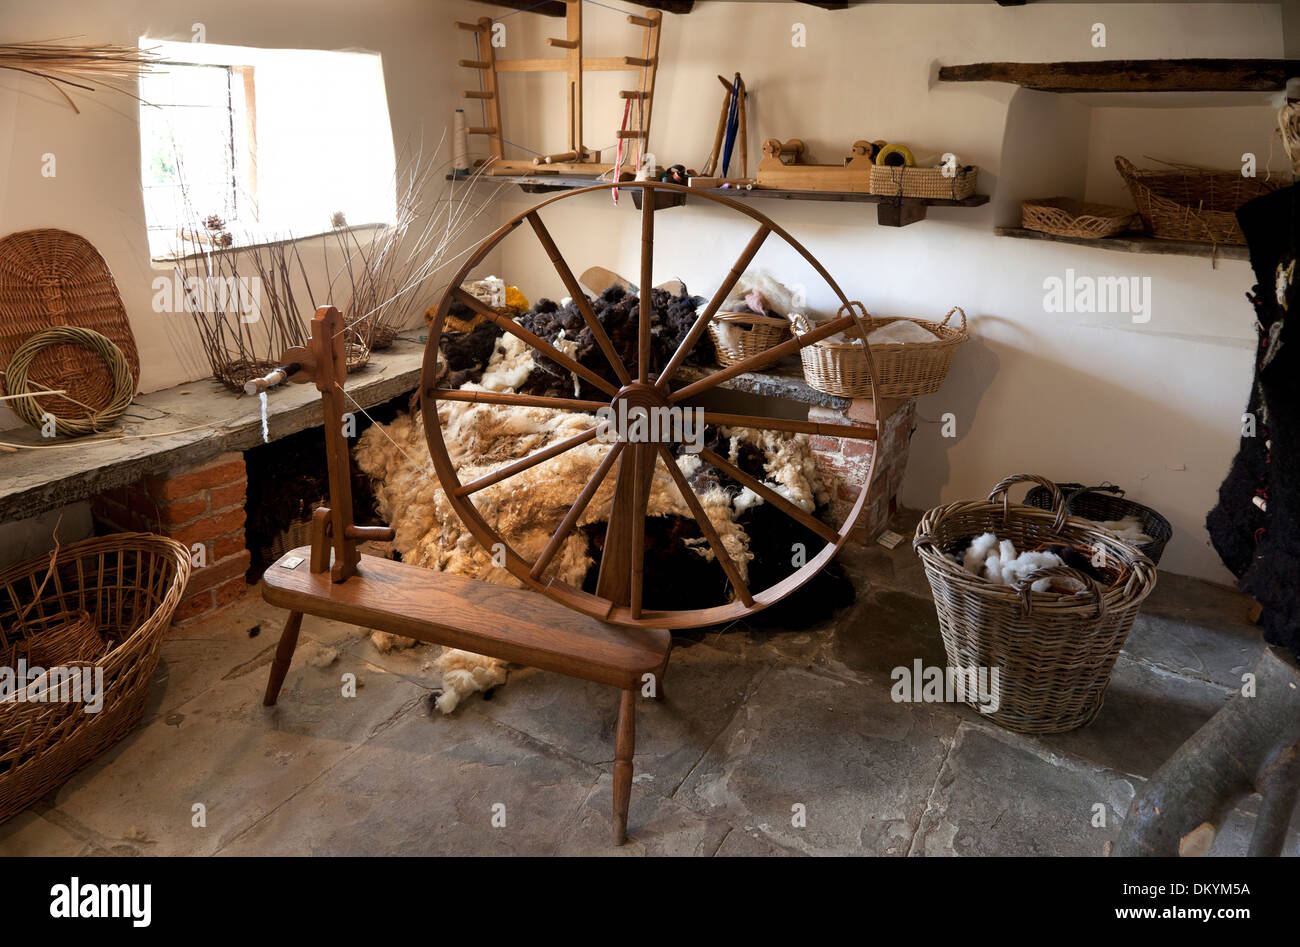 Traditional workshop with spinning wheel, fleece and baskets, England. Stock Photo